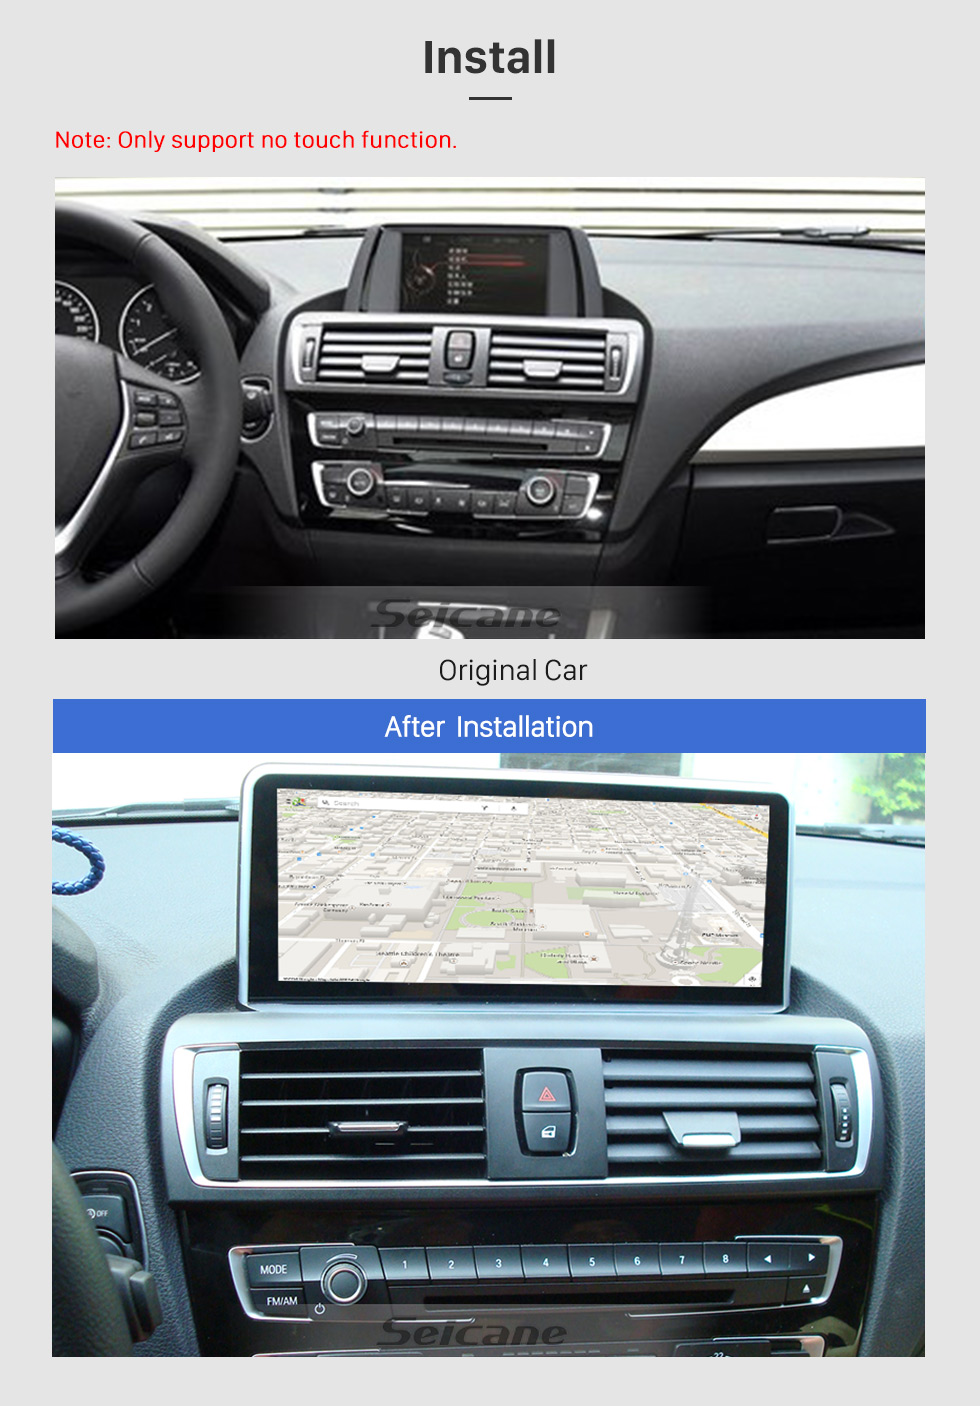 Seicane 8.8 Inch Android 8.1 2017 BMW 2 Series Car Stereo Radio Head Unit GPS Navigation System Bluetooth Support USB WIFI Rearview Camera Steering Wheel Control